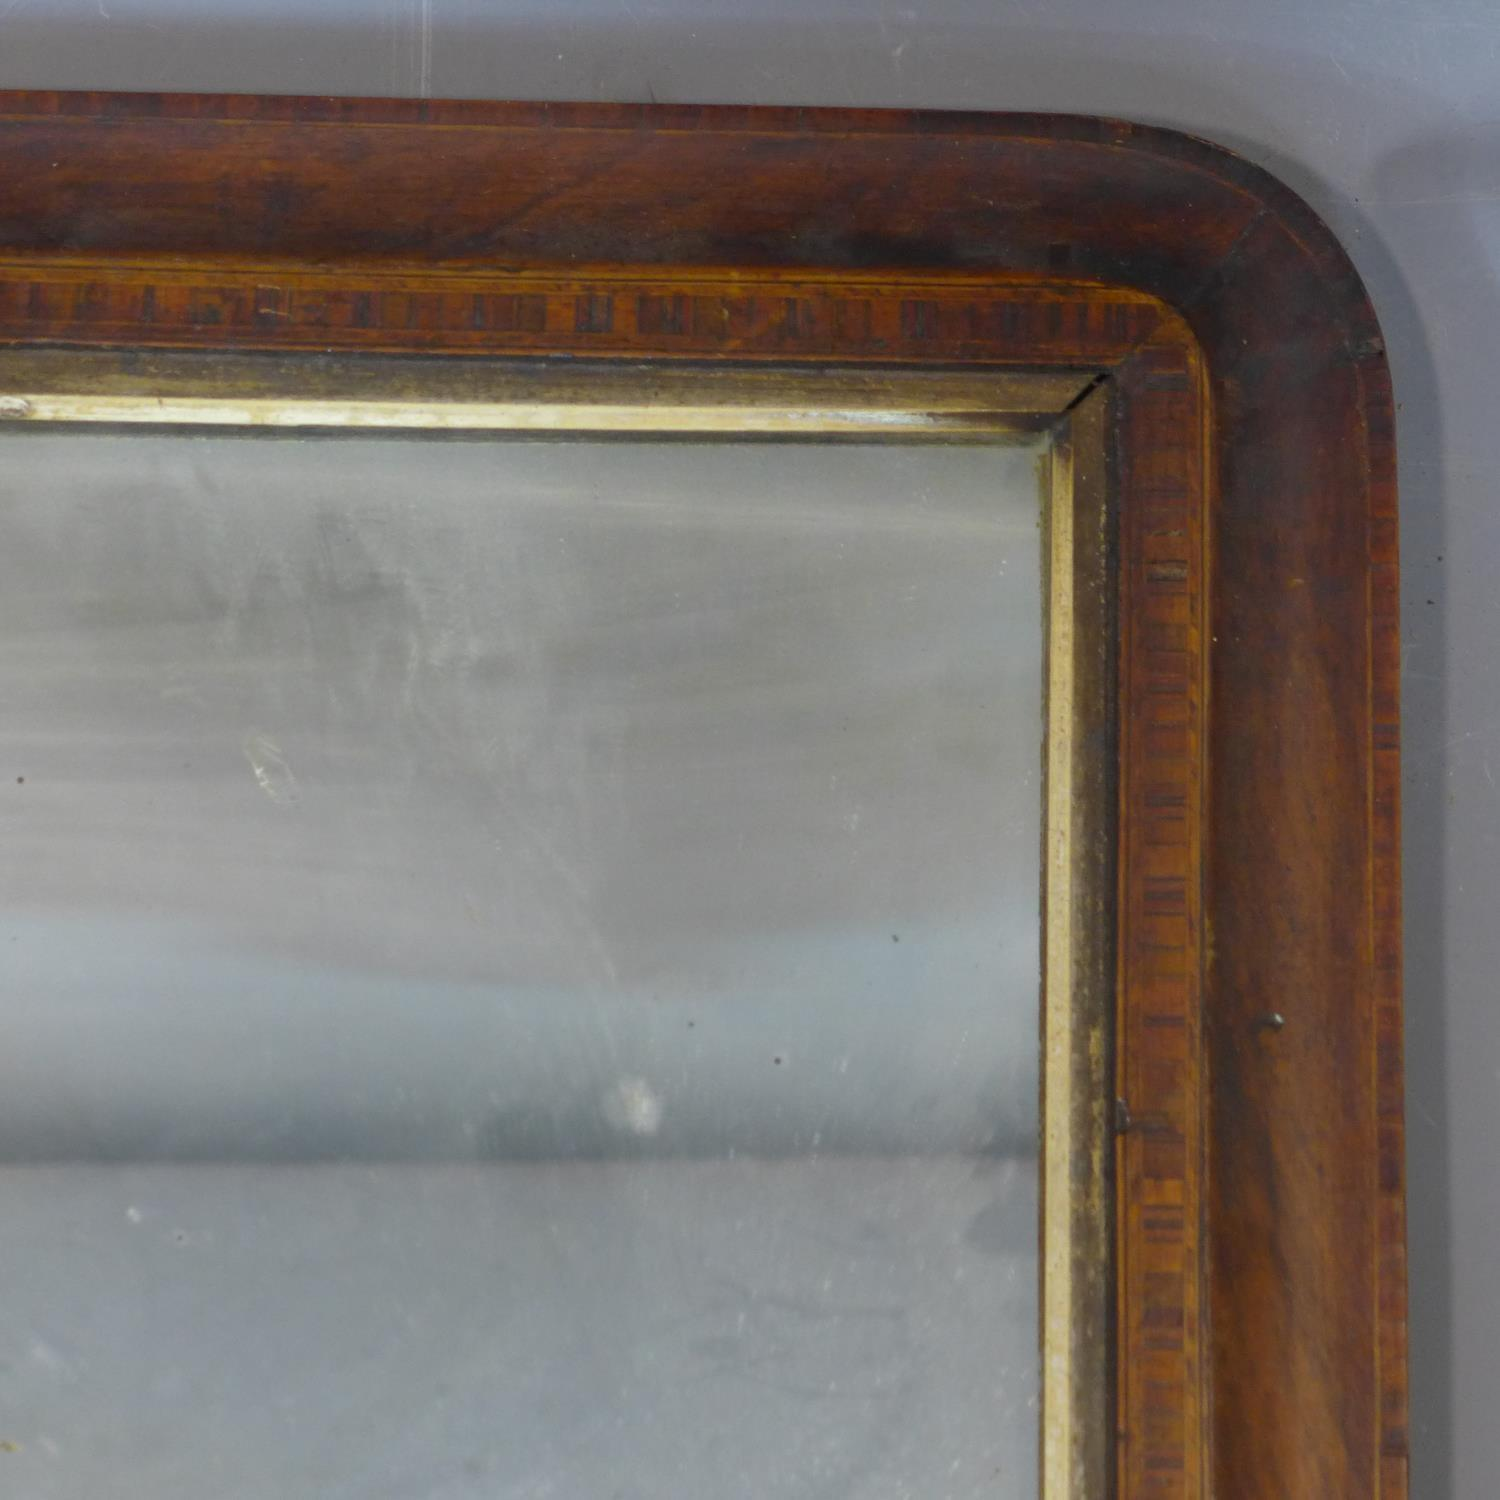 Lot 172 - An inlaid overmantle mirror, with some chips to frame, 43 x 71cm